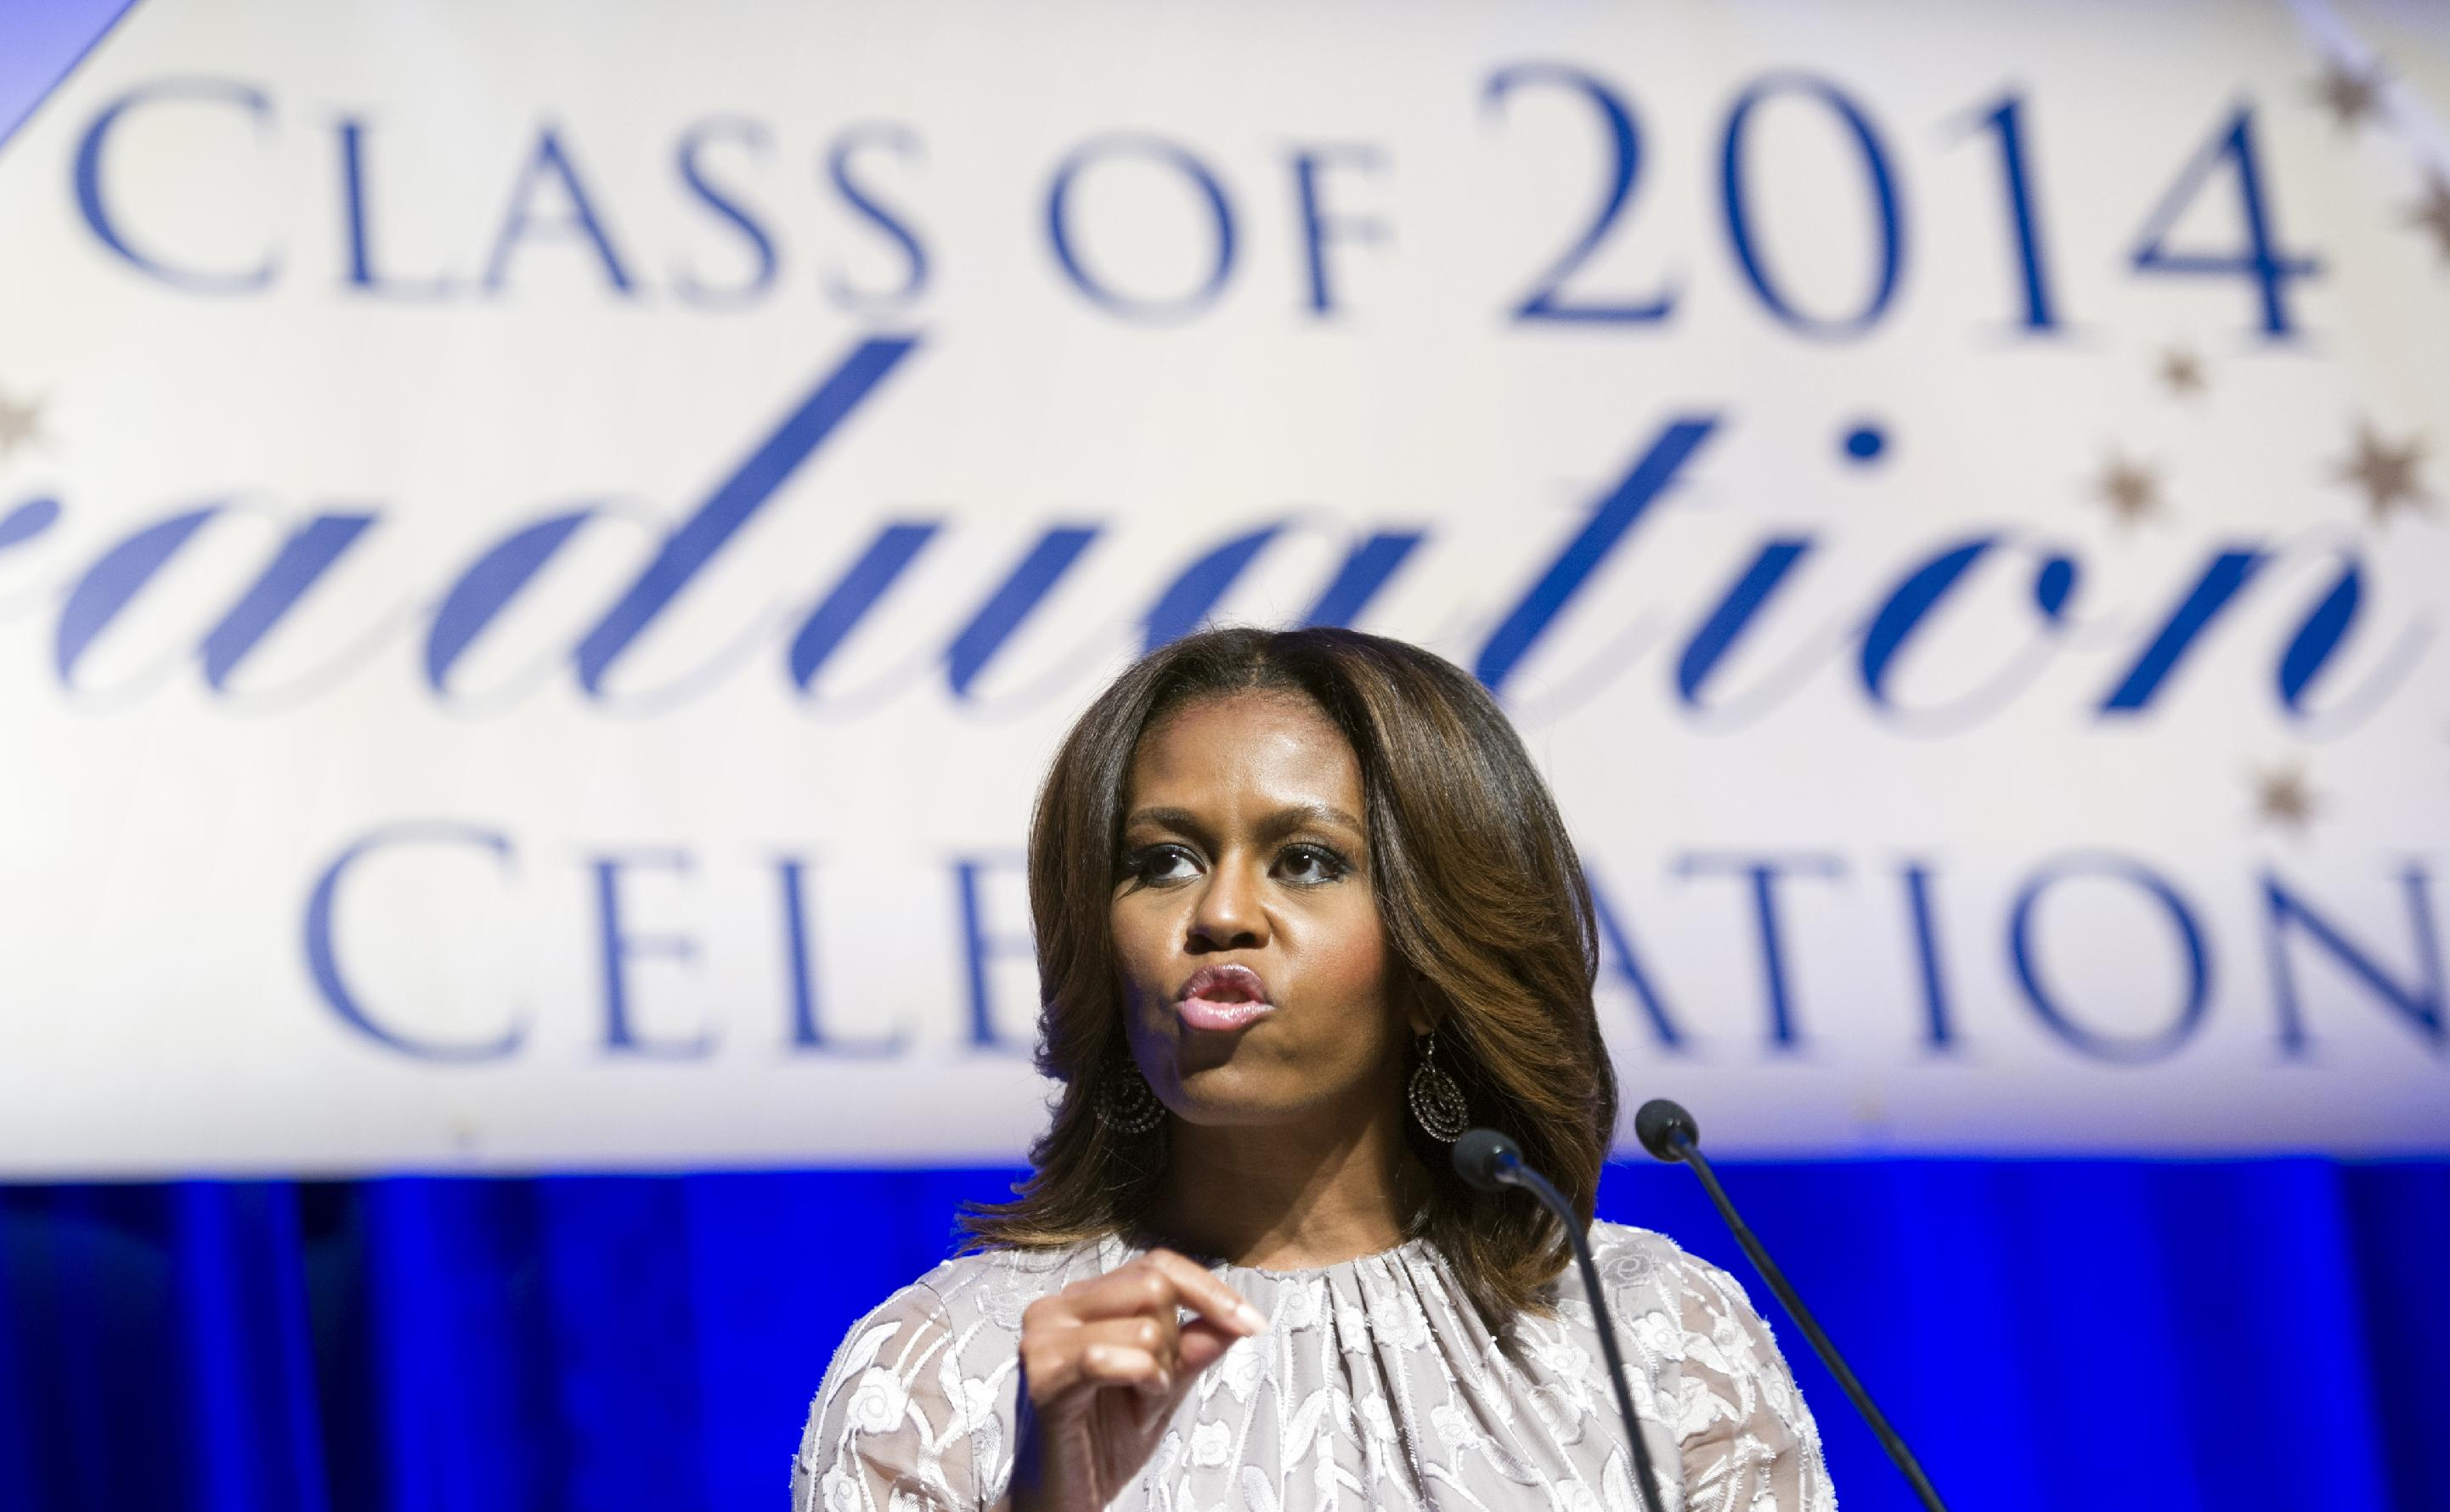 Don't shy away from struggle, first lady says